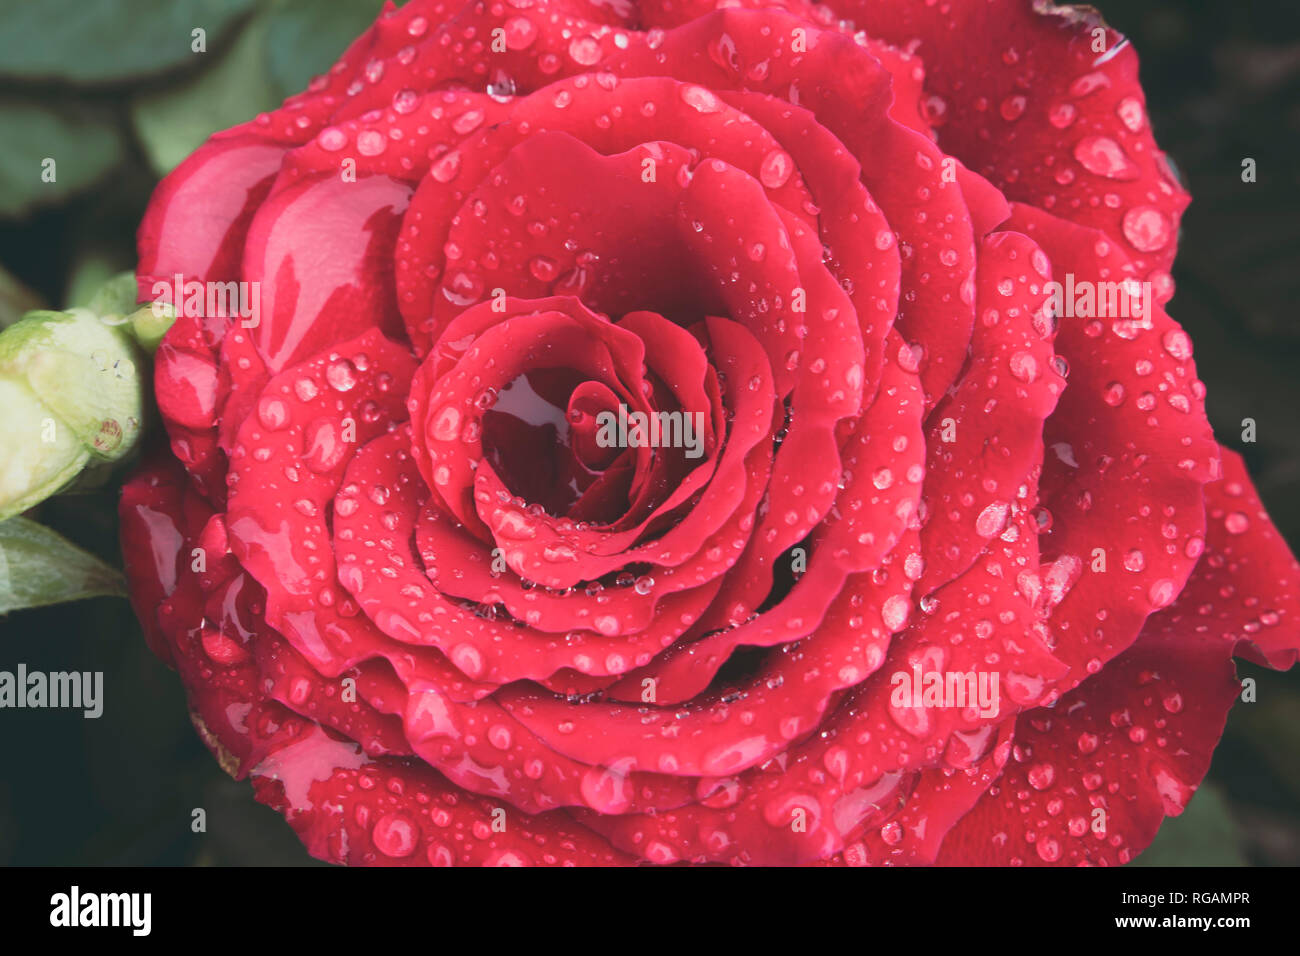 Macro of beautiful red rose in full bloom covered in water droplets from morning dew. Love and romantic concept. - Stock Image